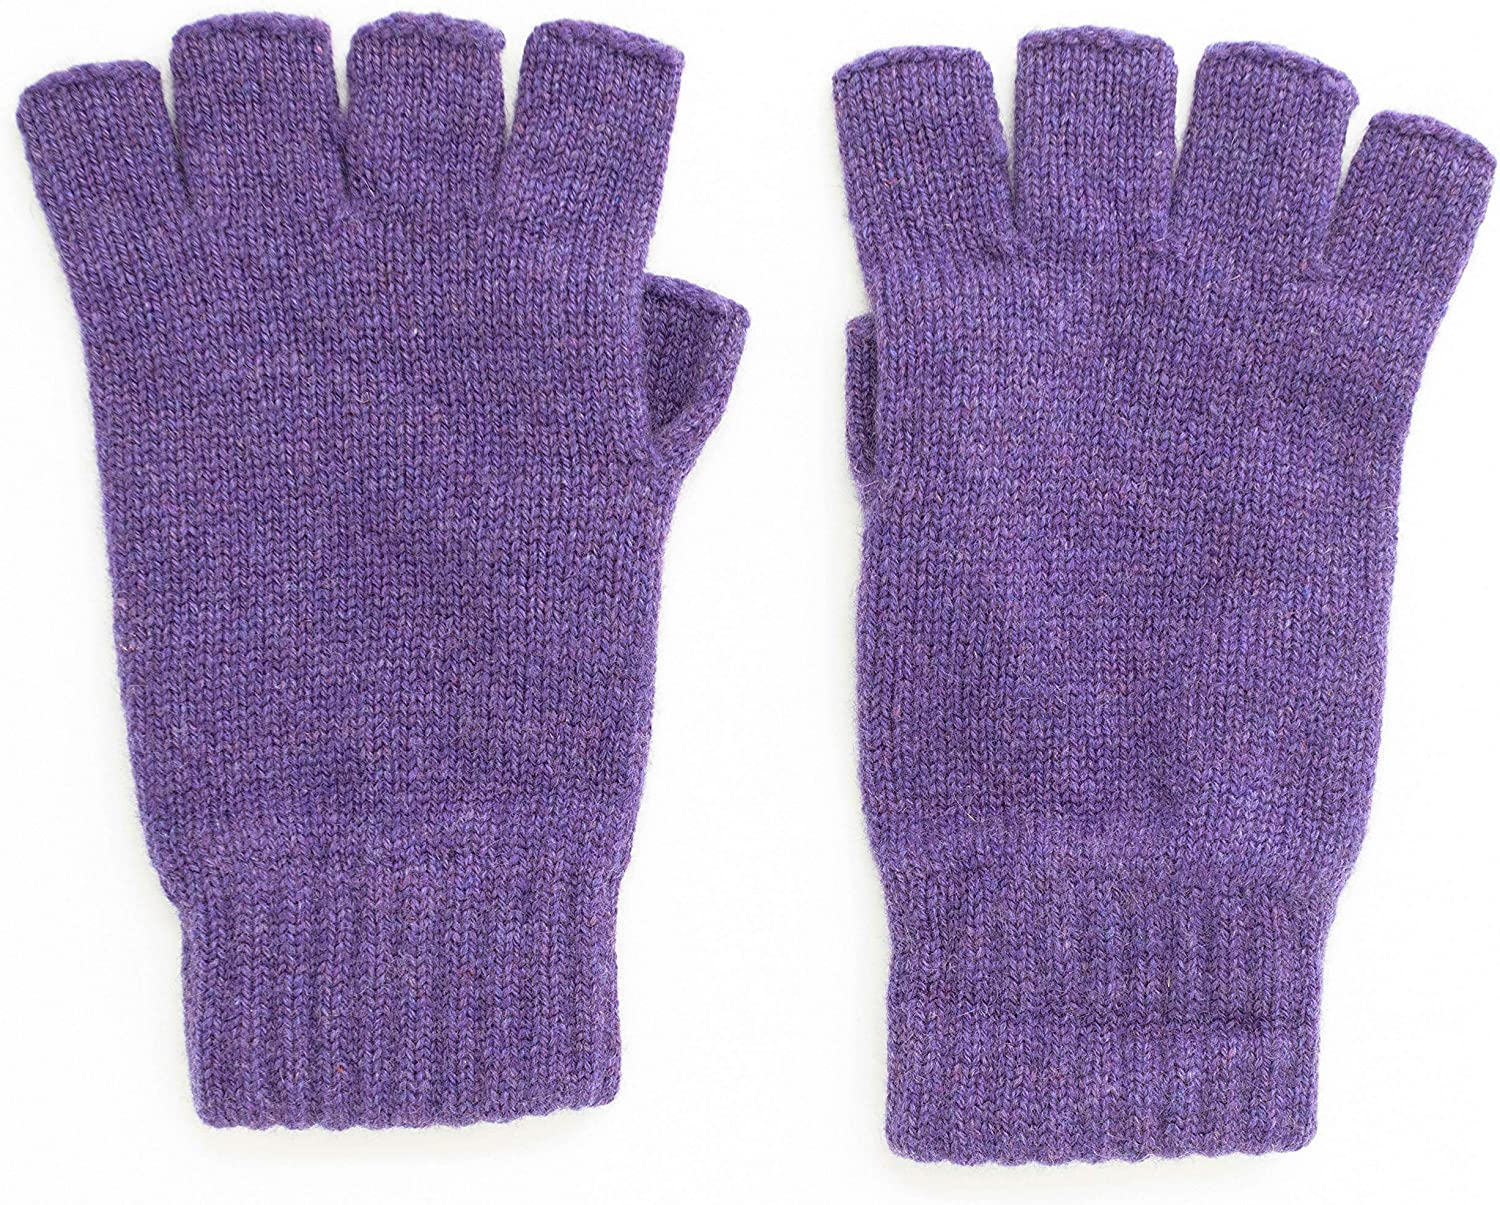 Womens Cashmere Fingerless Gloves Gift Boxed Graham Cashmere Made in Scotland